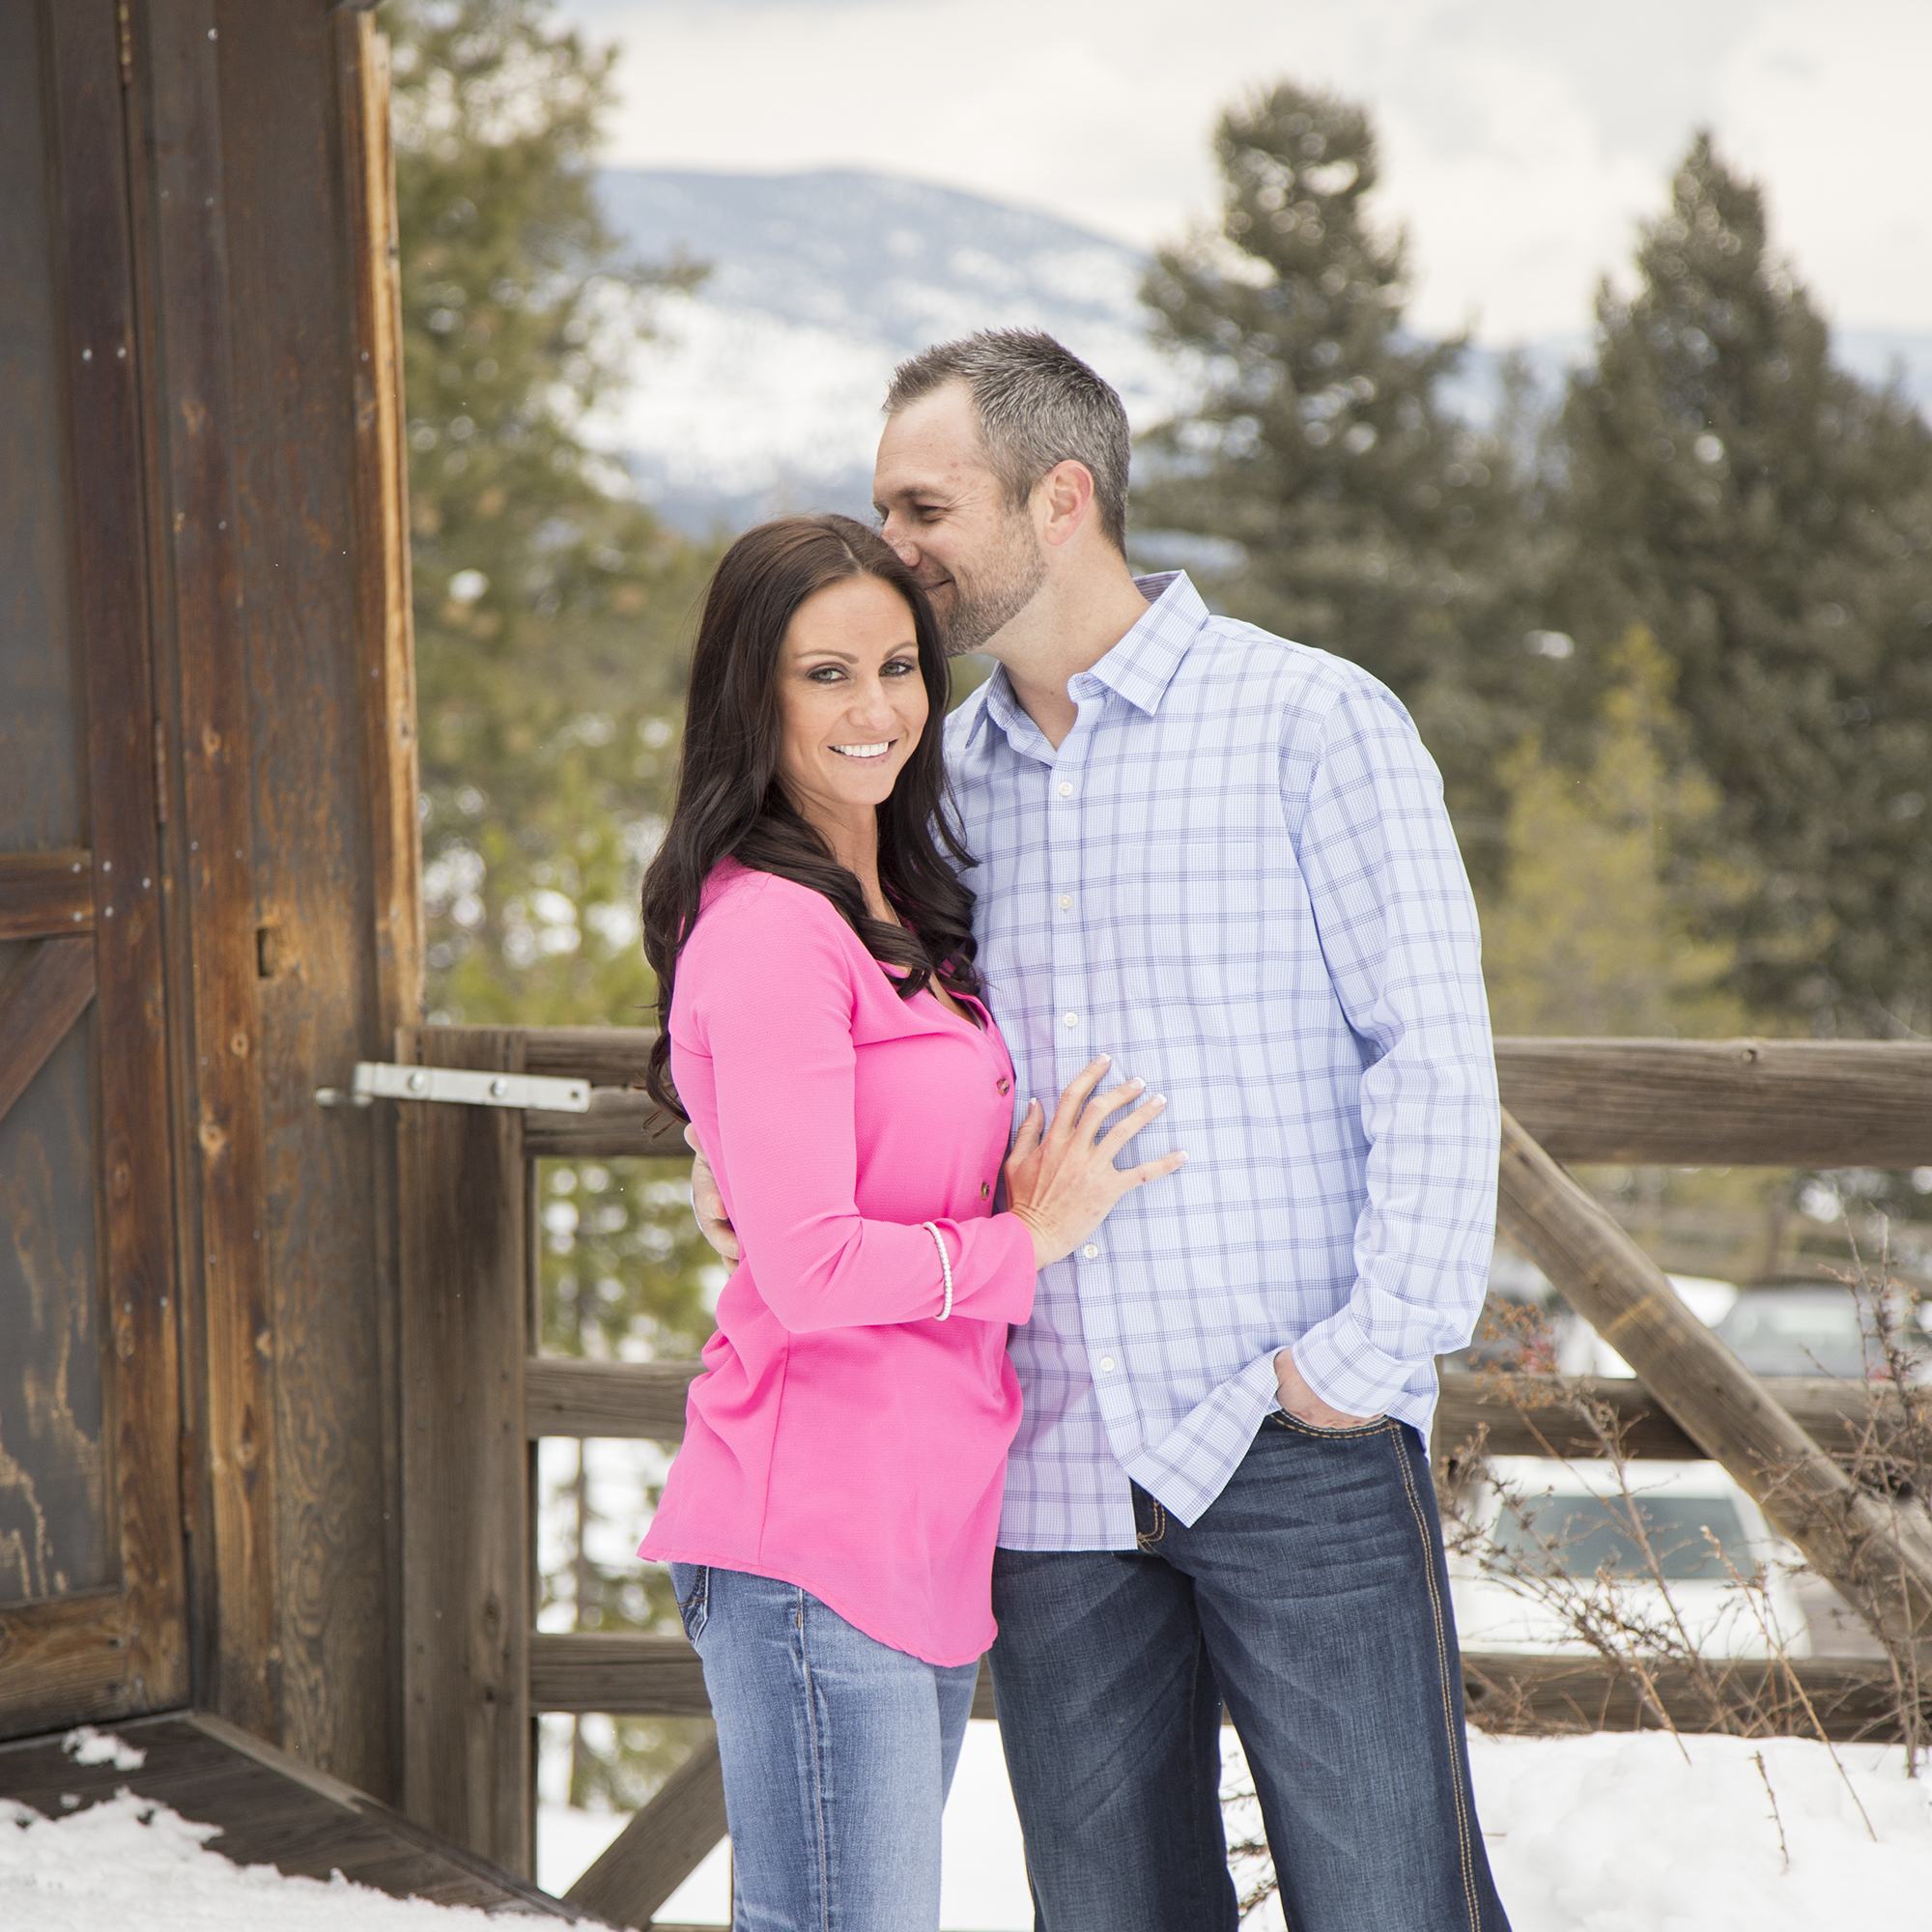 colorado-mountain-engagement-photographer-jennifer-garza